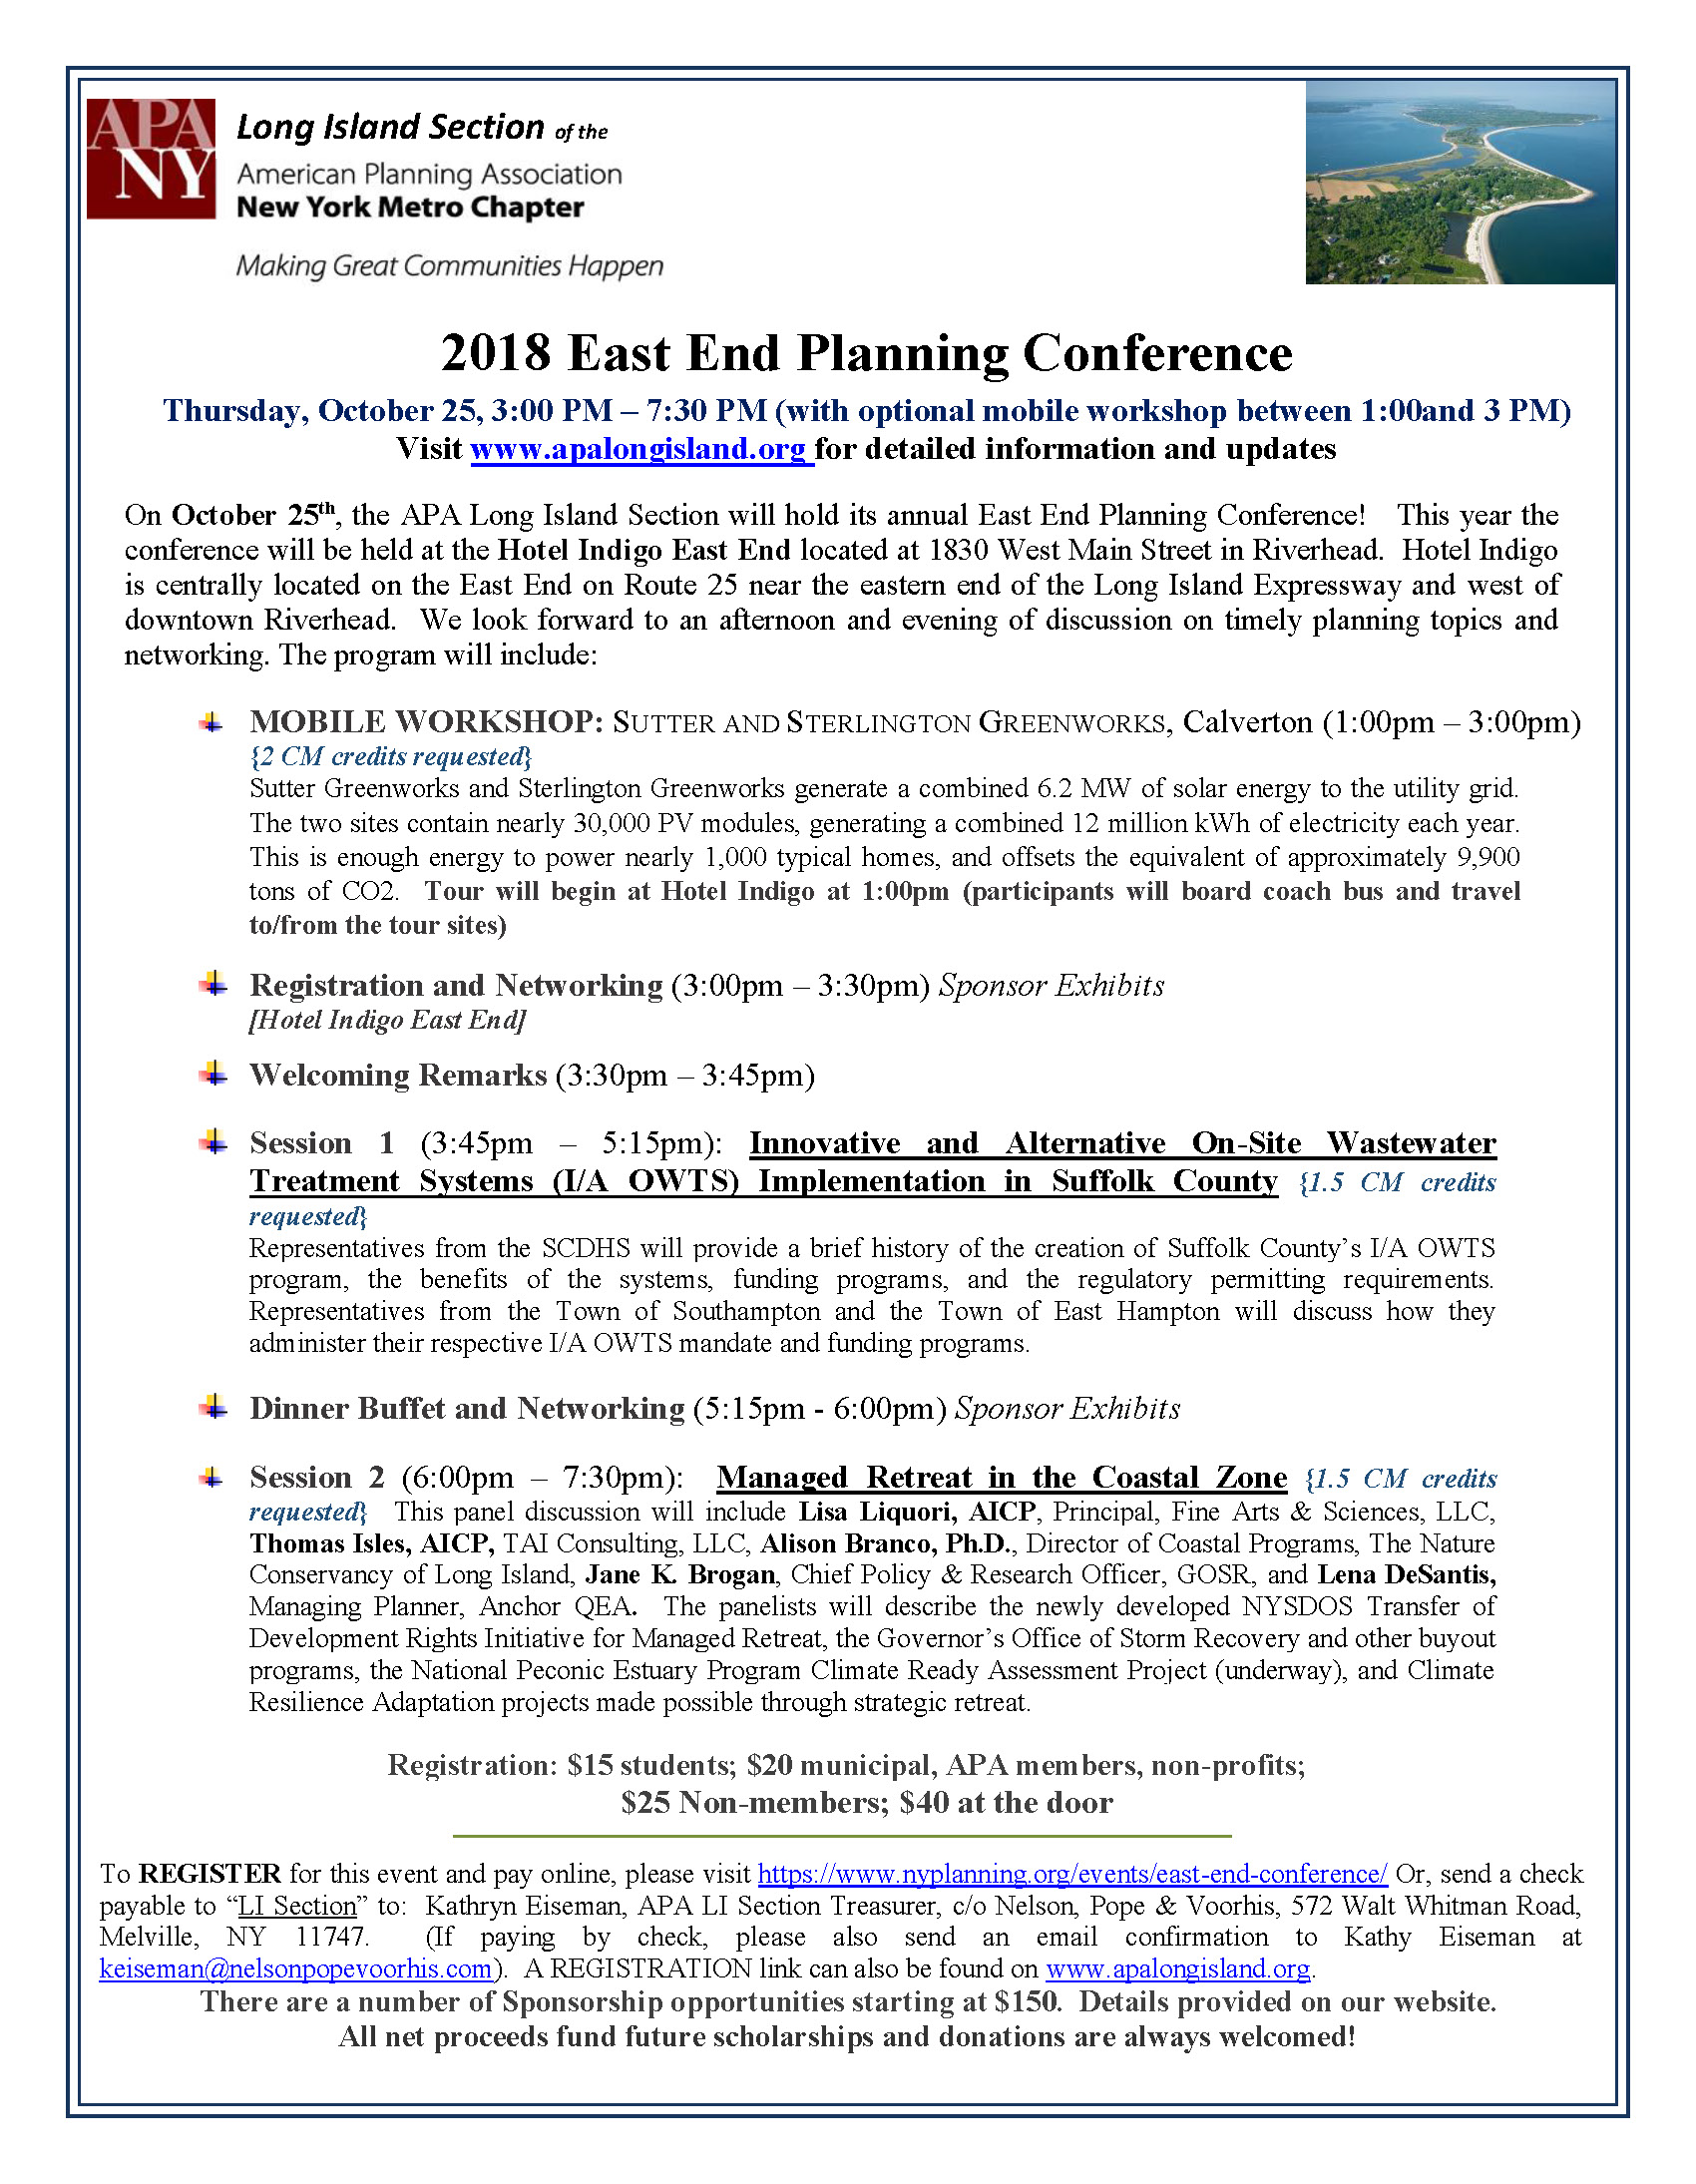 2018 East End Planning Conference Announcement DRAFT5 For WEB